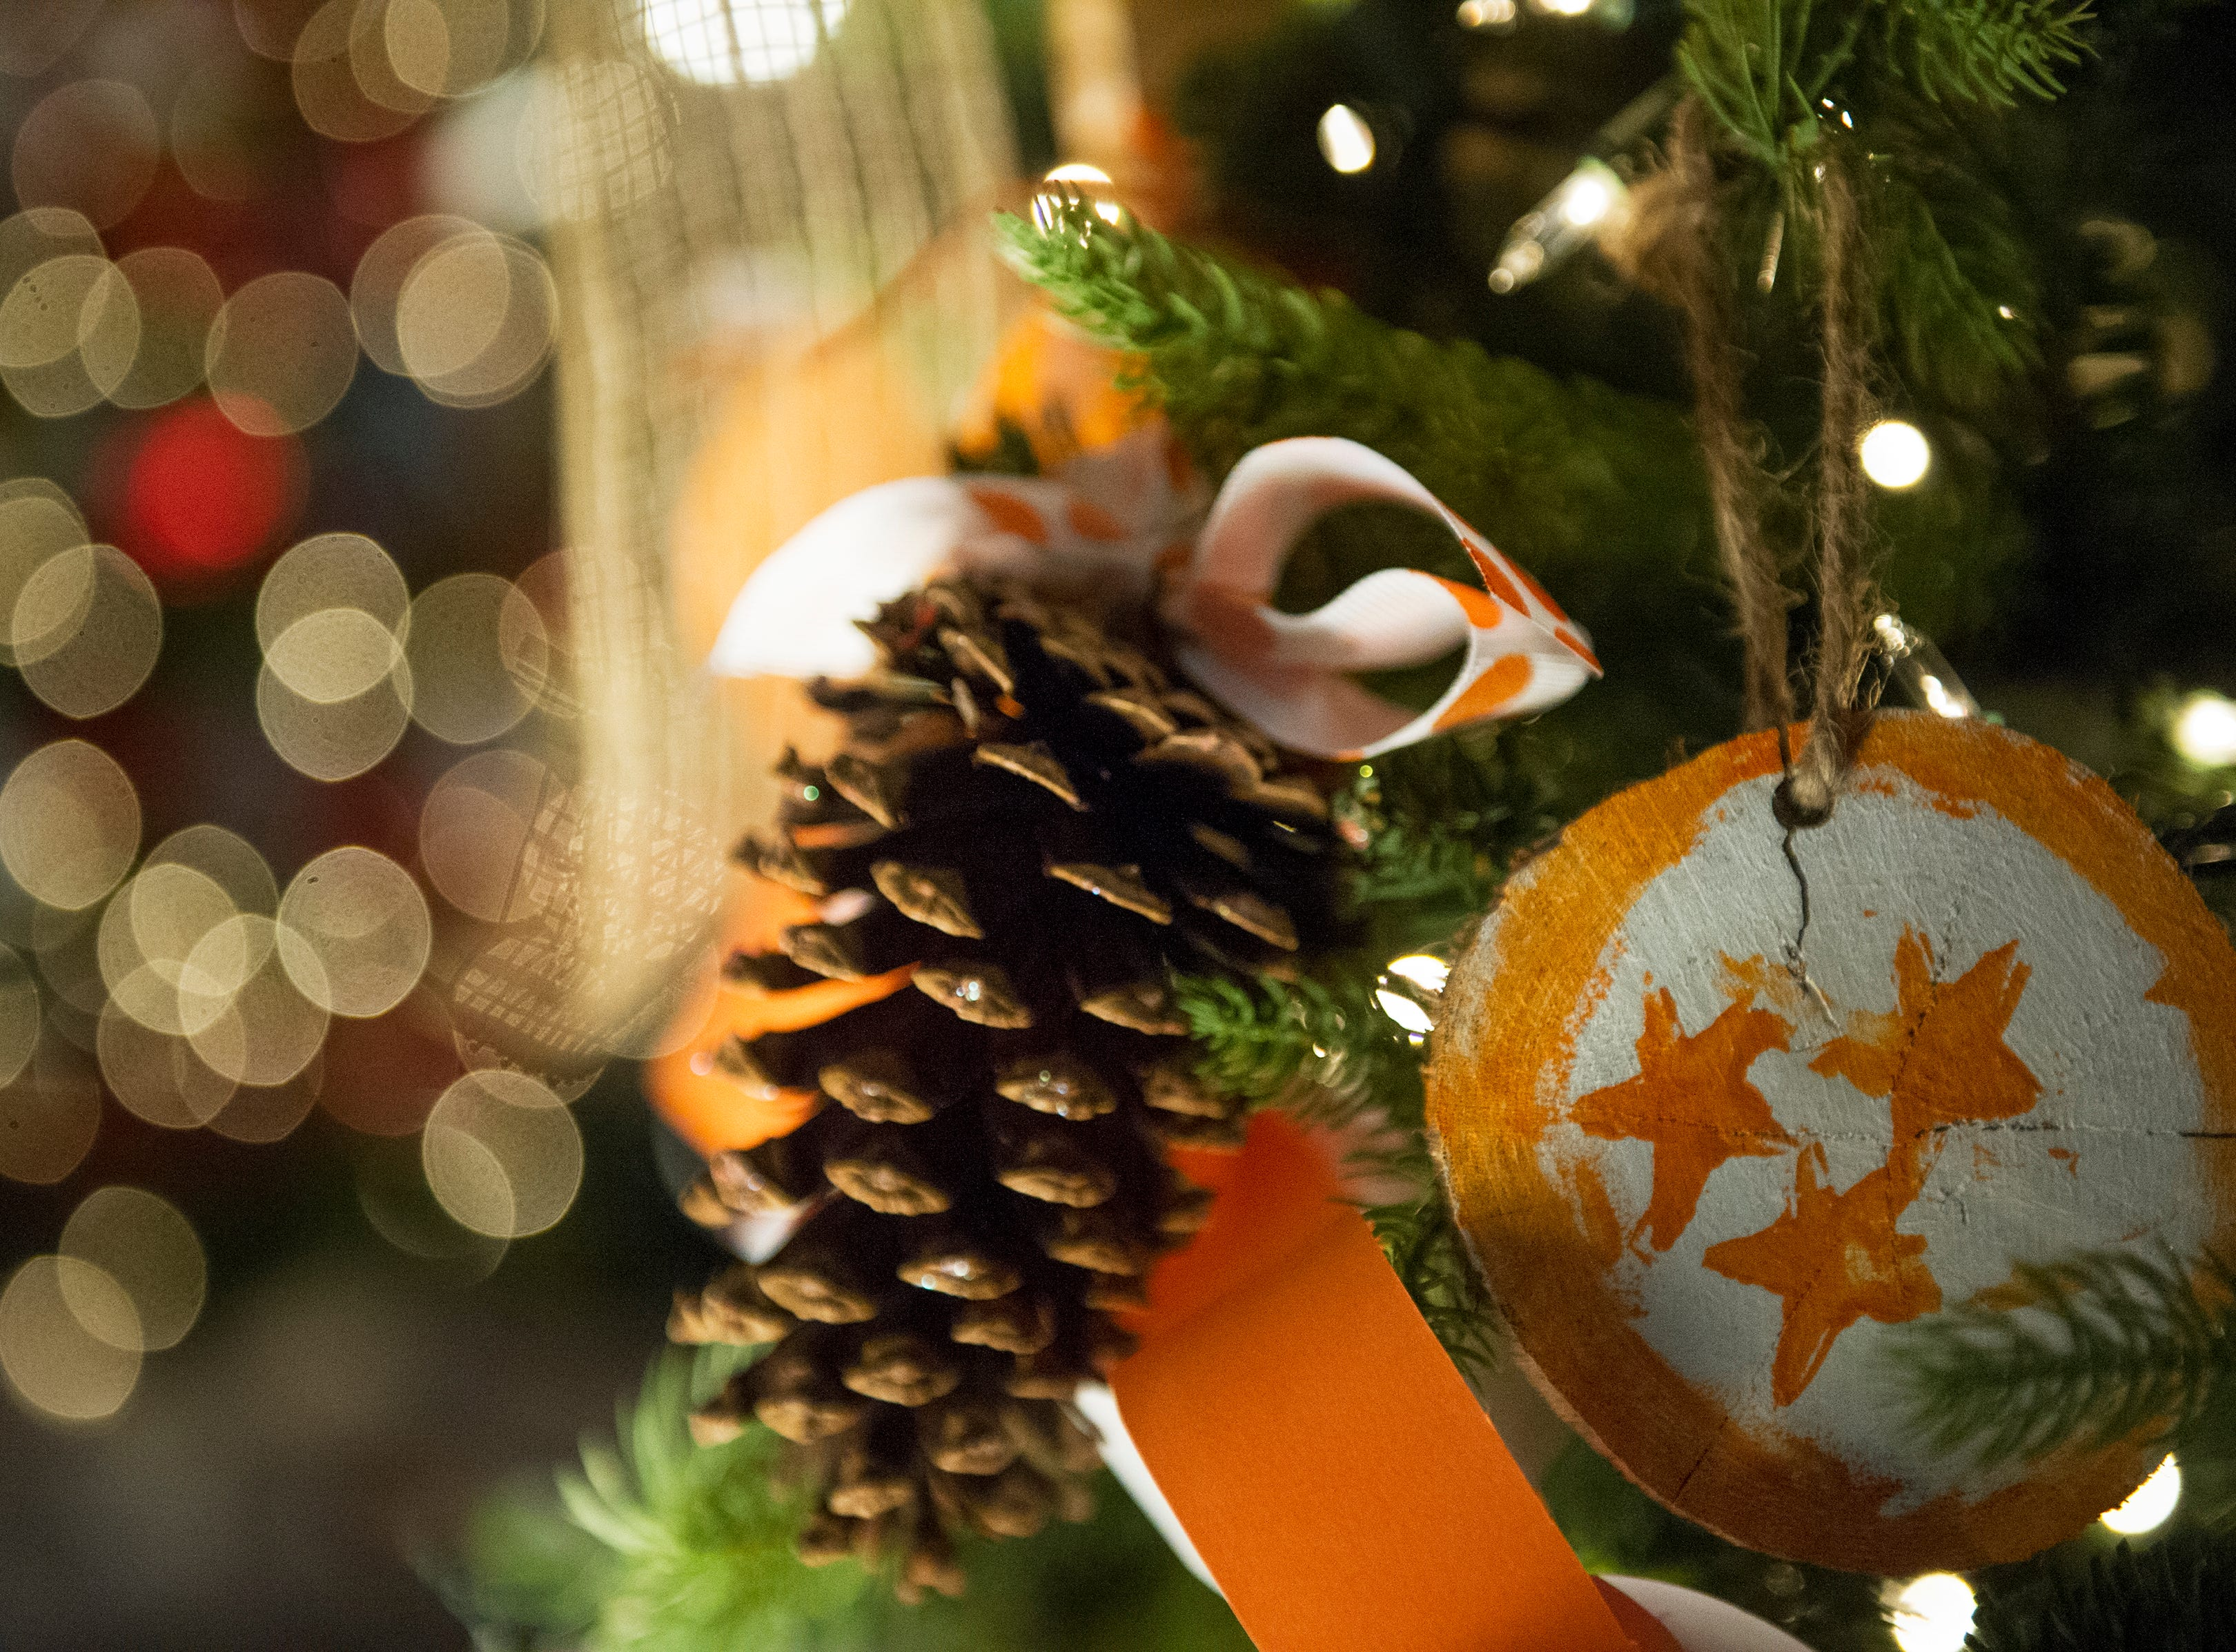 A hand made Tennessee inspired ornament hangs during the Fantasy of Trees at the Knoxville Convention Center Wednesday, Nov. 25, 2015. (JESSICA TEZAK/NEWS SENTINEL)